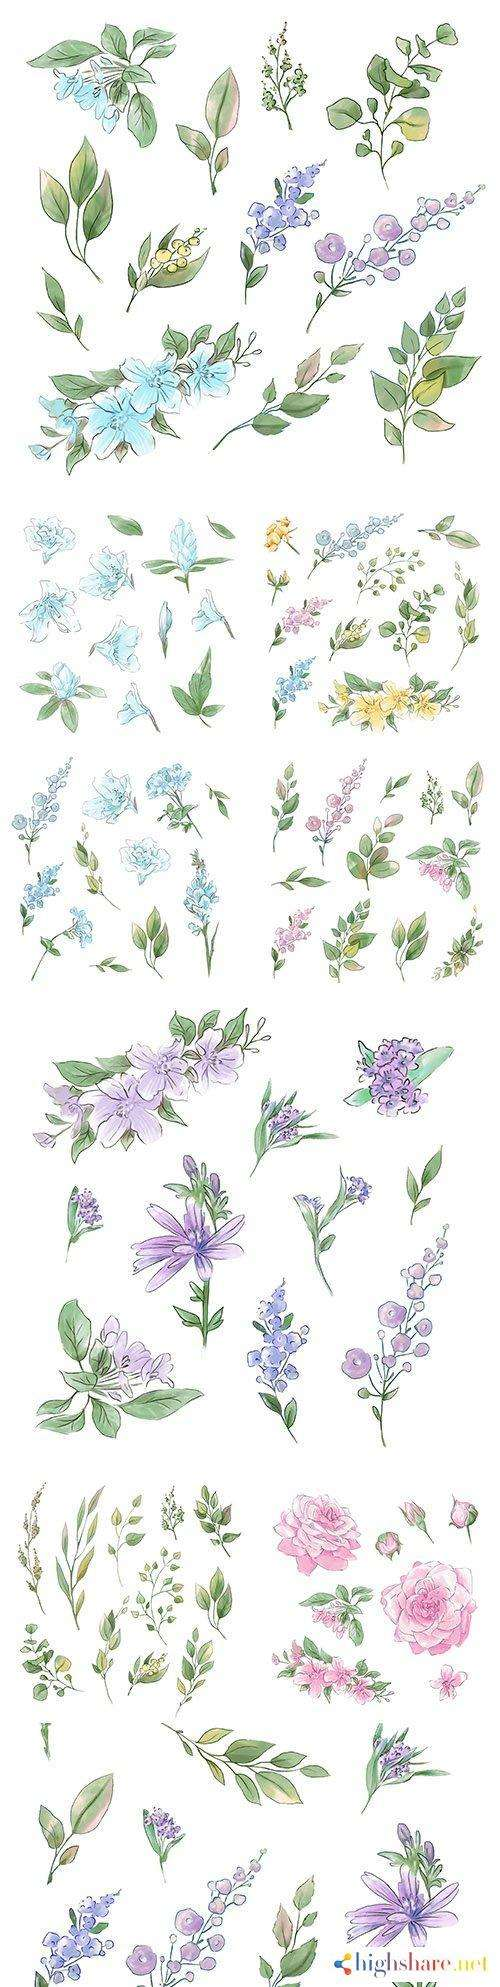 flowers and twigs with leaves watercolor design illustrations 5f41e7079c847 - Flowers and twigs with leaves watercolor design illustrations